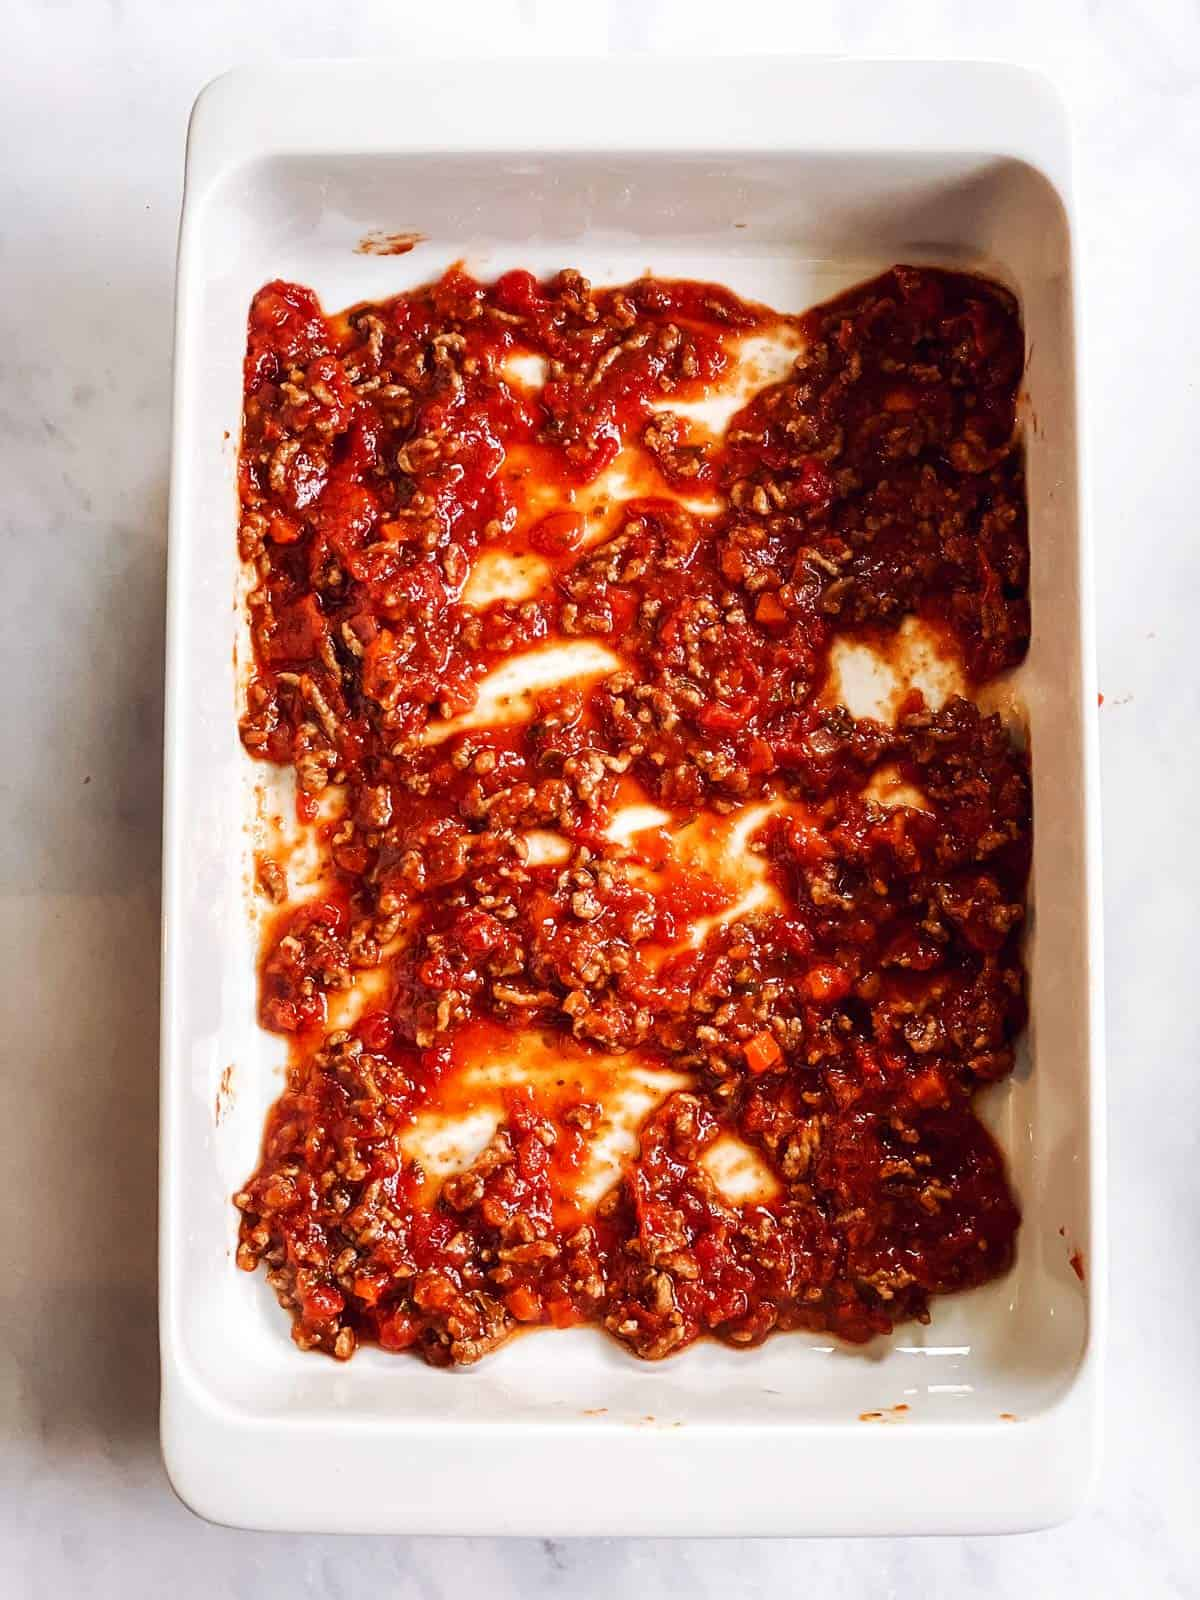 casserole dish with sauce at the bottom